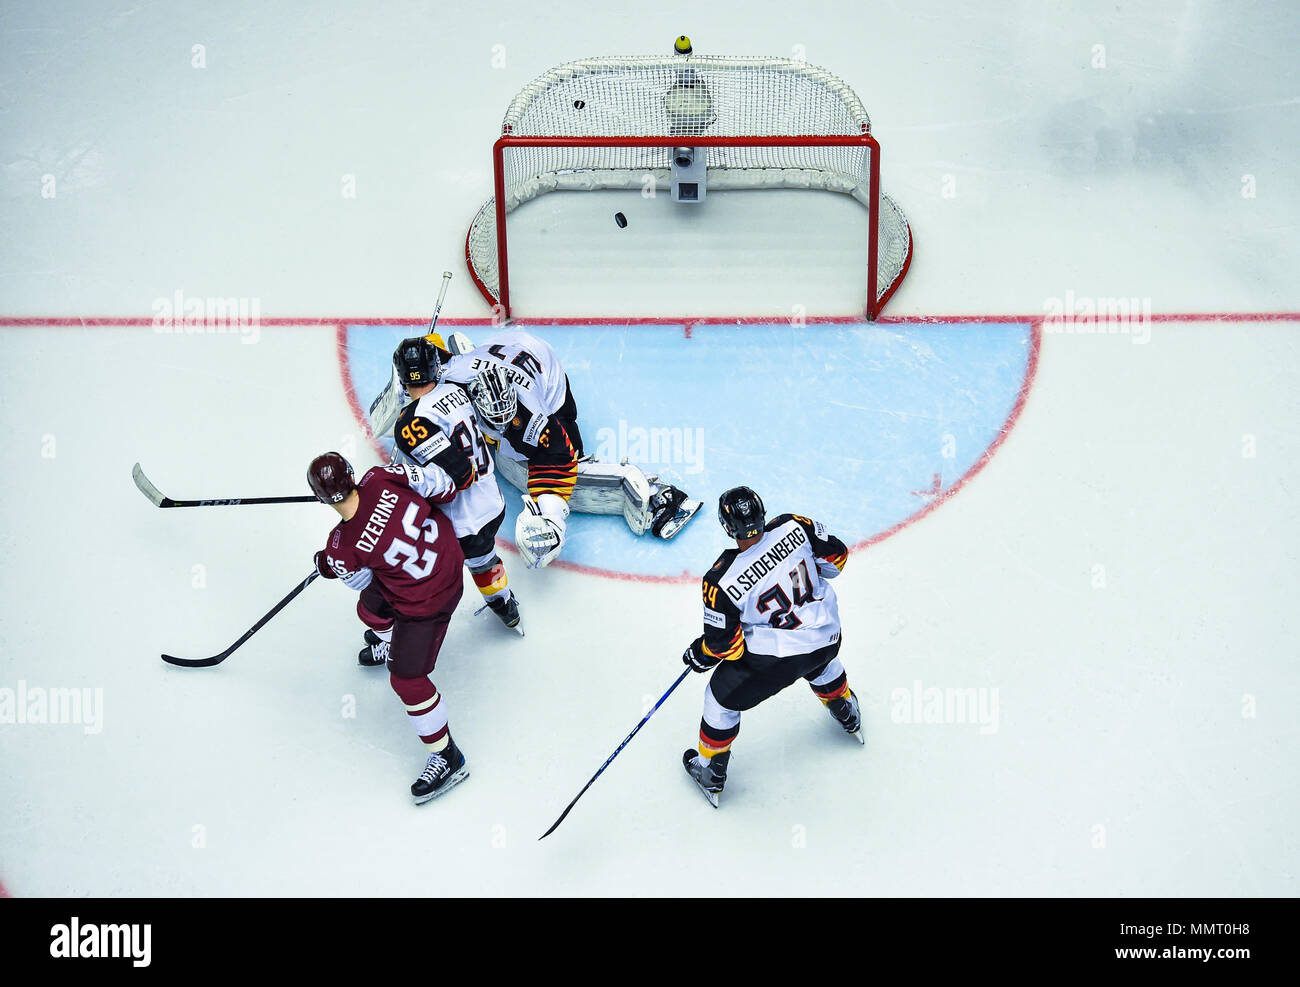 Herning, Denmark.. 12th May, 2018. (LR) Andris Dzerins of Team Latvia, Frederik Tiffels, Niklas Treutle and Dennis Seidenberg of Team Germany during the match between Latvia and Germany on 12.05.2018 in Herning, Denmark. (Photo by Marco Leipold/City-Press GbR) | usage worldwide Credit: dpa picture alliance/Alamy Live News Stock Photo